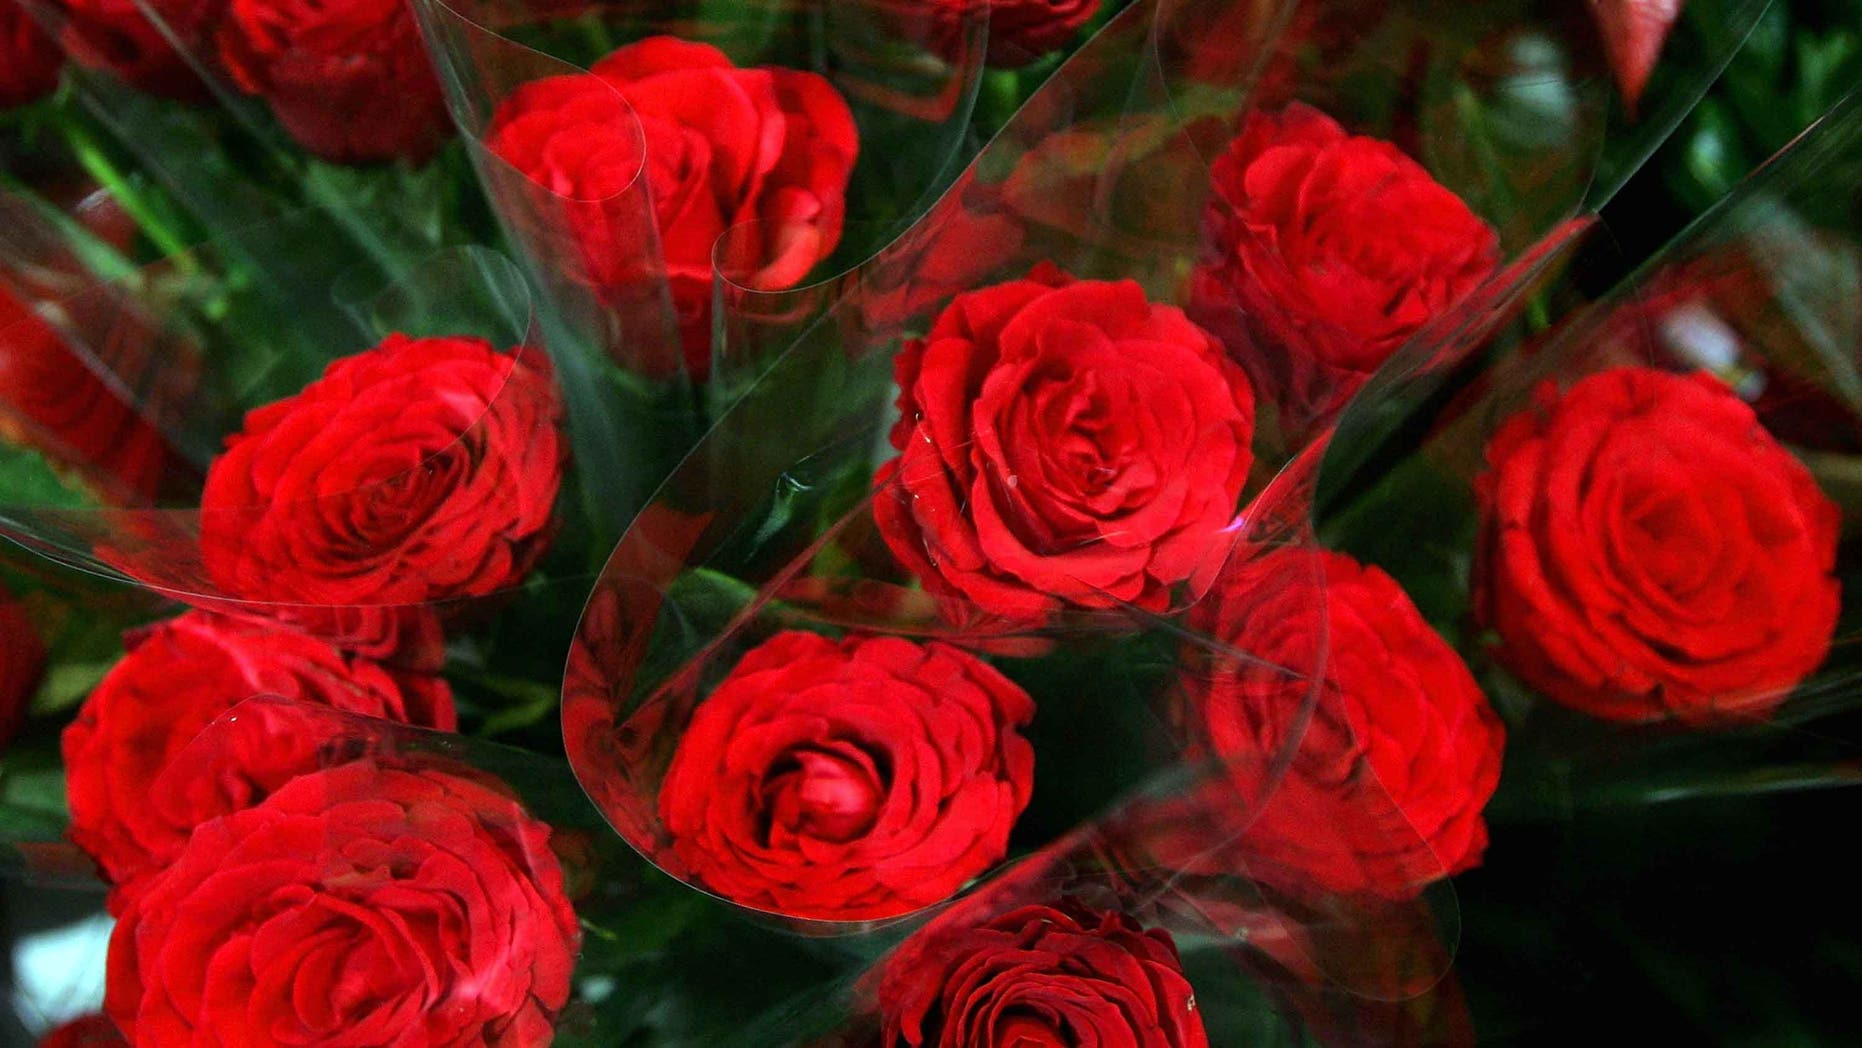 SYDNEY, AUSTRALIA - FEBRUARY 14:  Red roses are seen on display at a florist on Valentine's Day, February 14, 2008 in Sydney, Australia. The day is named after two of 11 officially recognised Early Christian martyrs named Valentine, namely Valentine of Rome and Valentine of Terni, and has been associated with love and romance since Chaucer's 1382 writings in 'Parlement of Foules' to honour the first anniversary of the engagement of King Richard II of England to Anne of Bohemia.  (Photo by Sergio Dionisio/Getty Images)